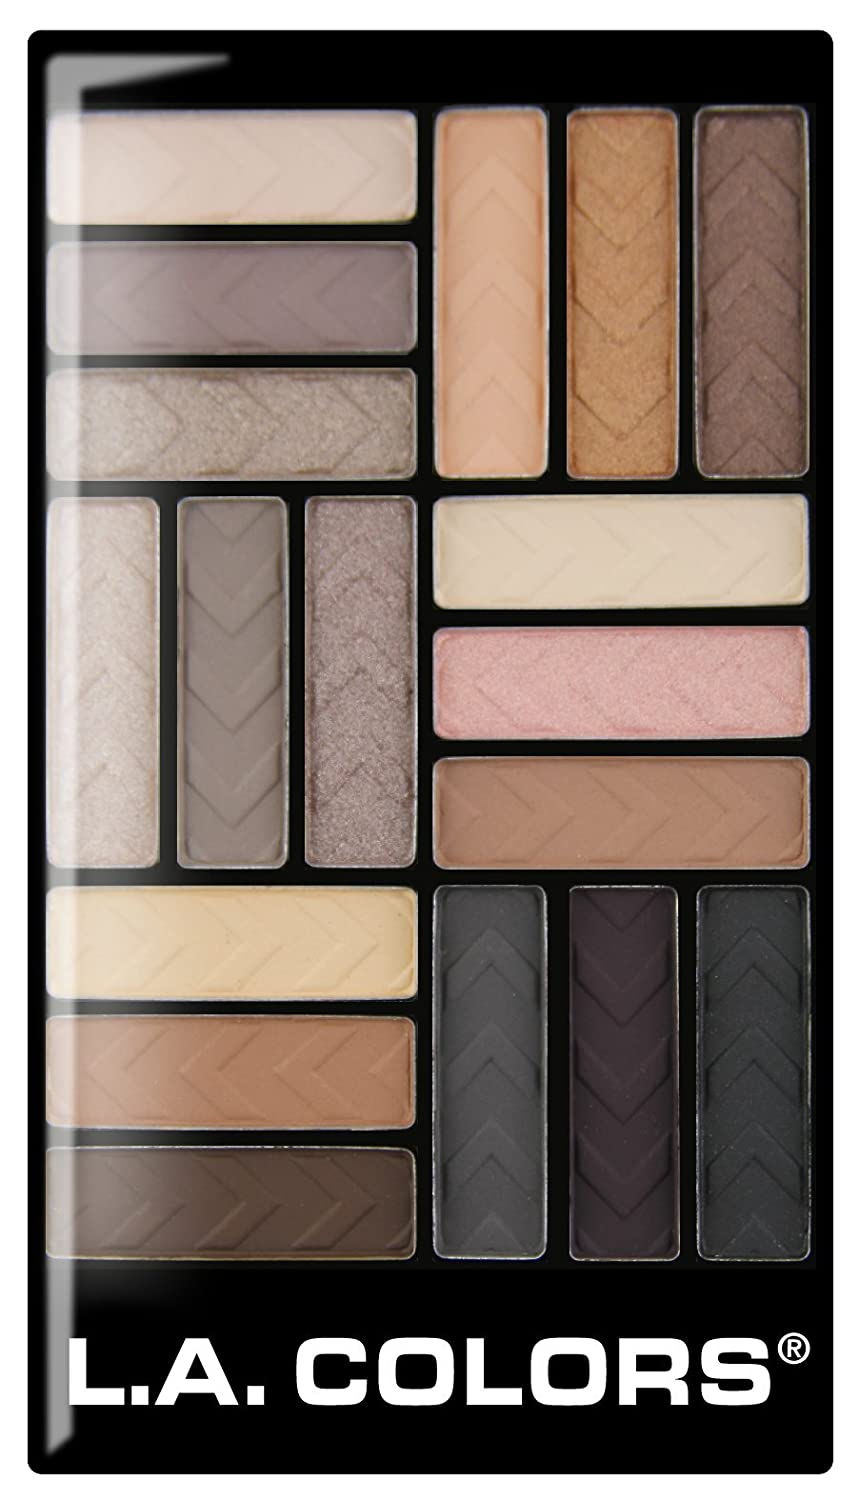 L.A. Colors 18 Color Eyeshadow Palette, Downtown Brown, 0.70 Oz L.A. Colors Cosmetics CES750